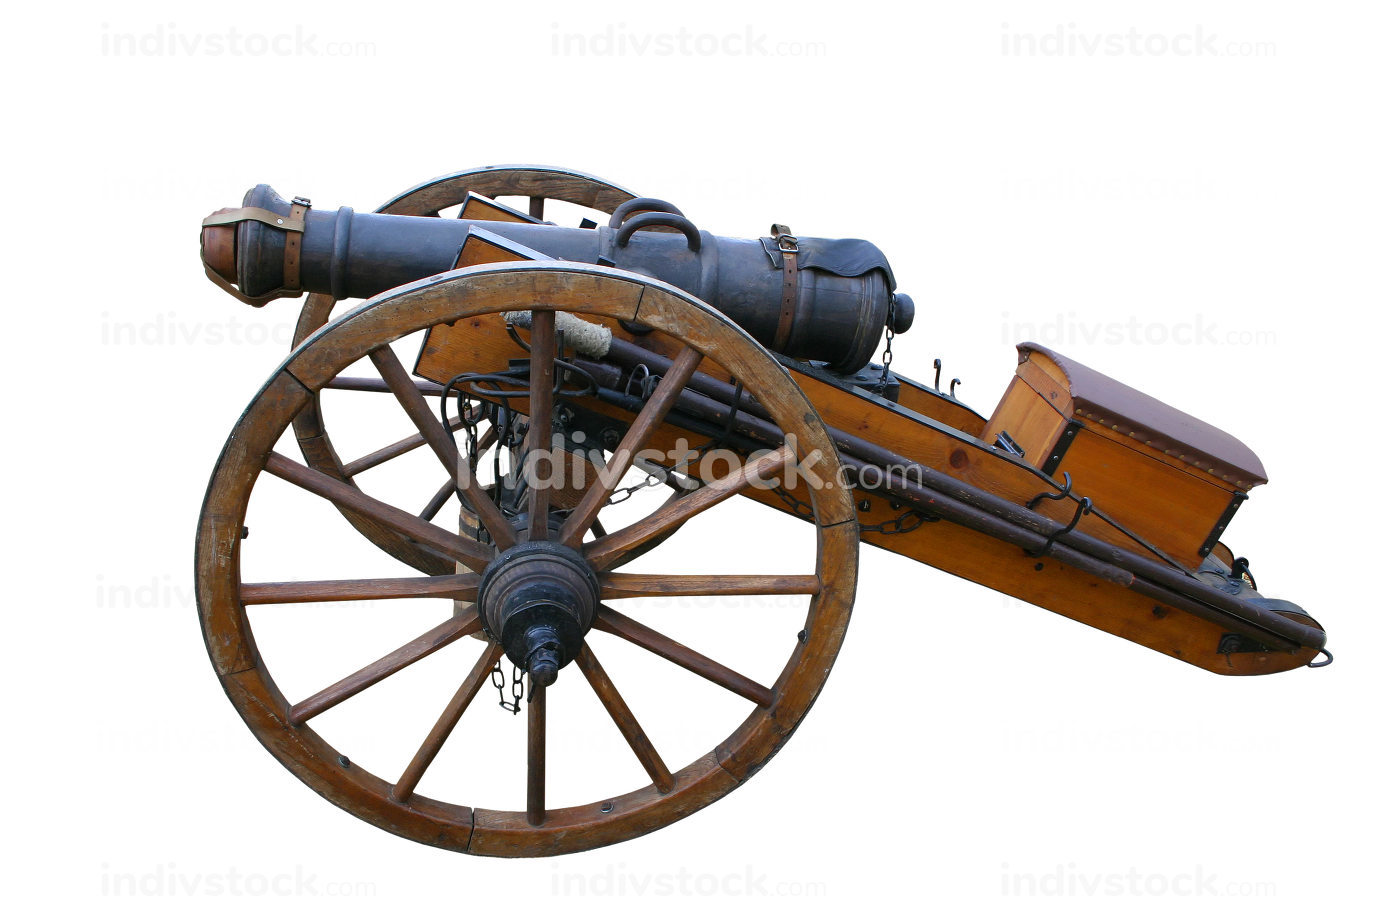 Ancient cannon isolated on white background.